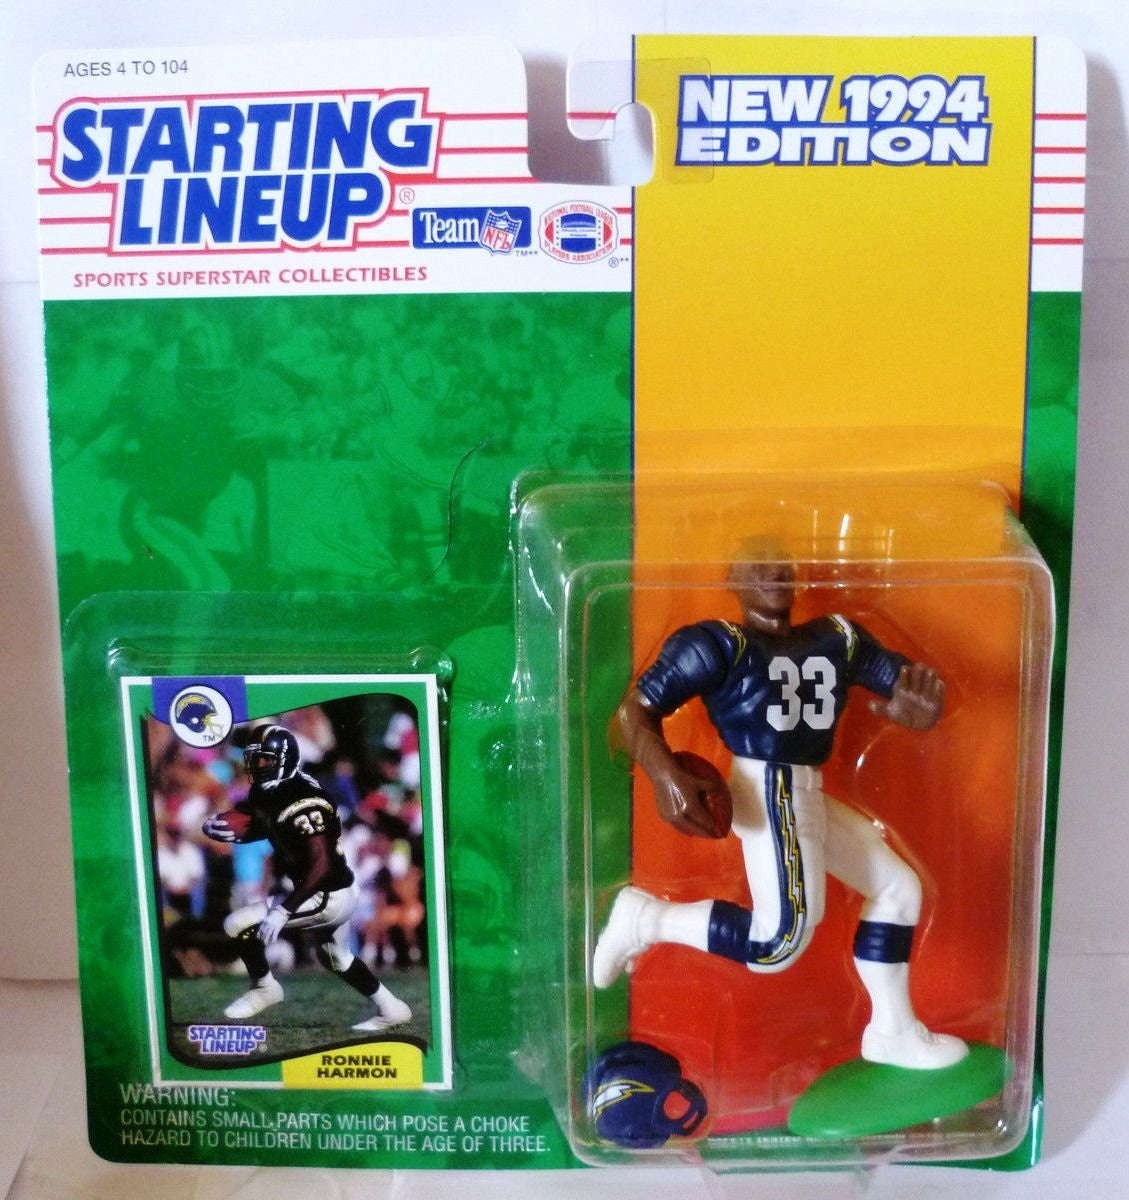 Ronnie Harmon Action Figure of the San Diego Chargers - 1994 Starting Lineup NFL Sports Superstar Collectibles